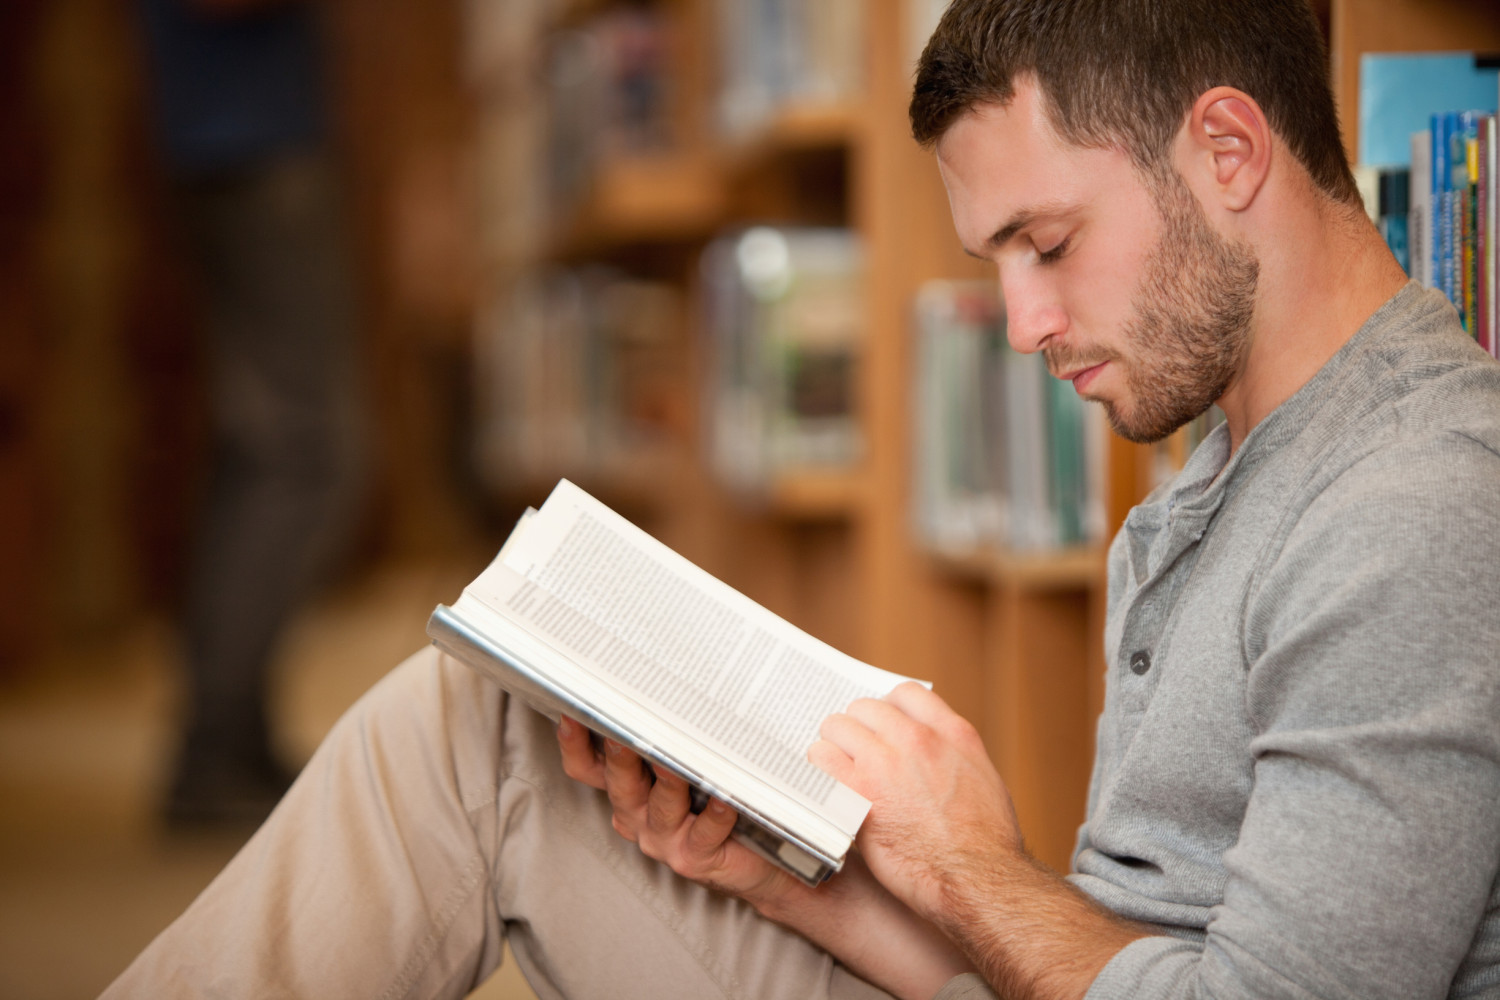 http://www.dailydappr.com/wp-content/uploads/2015/01/man-reading-e1420264169252.jpg